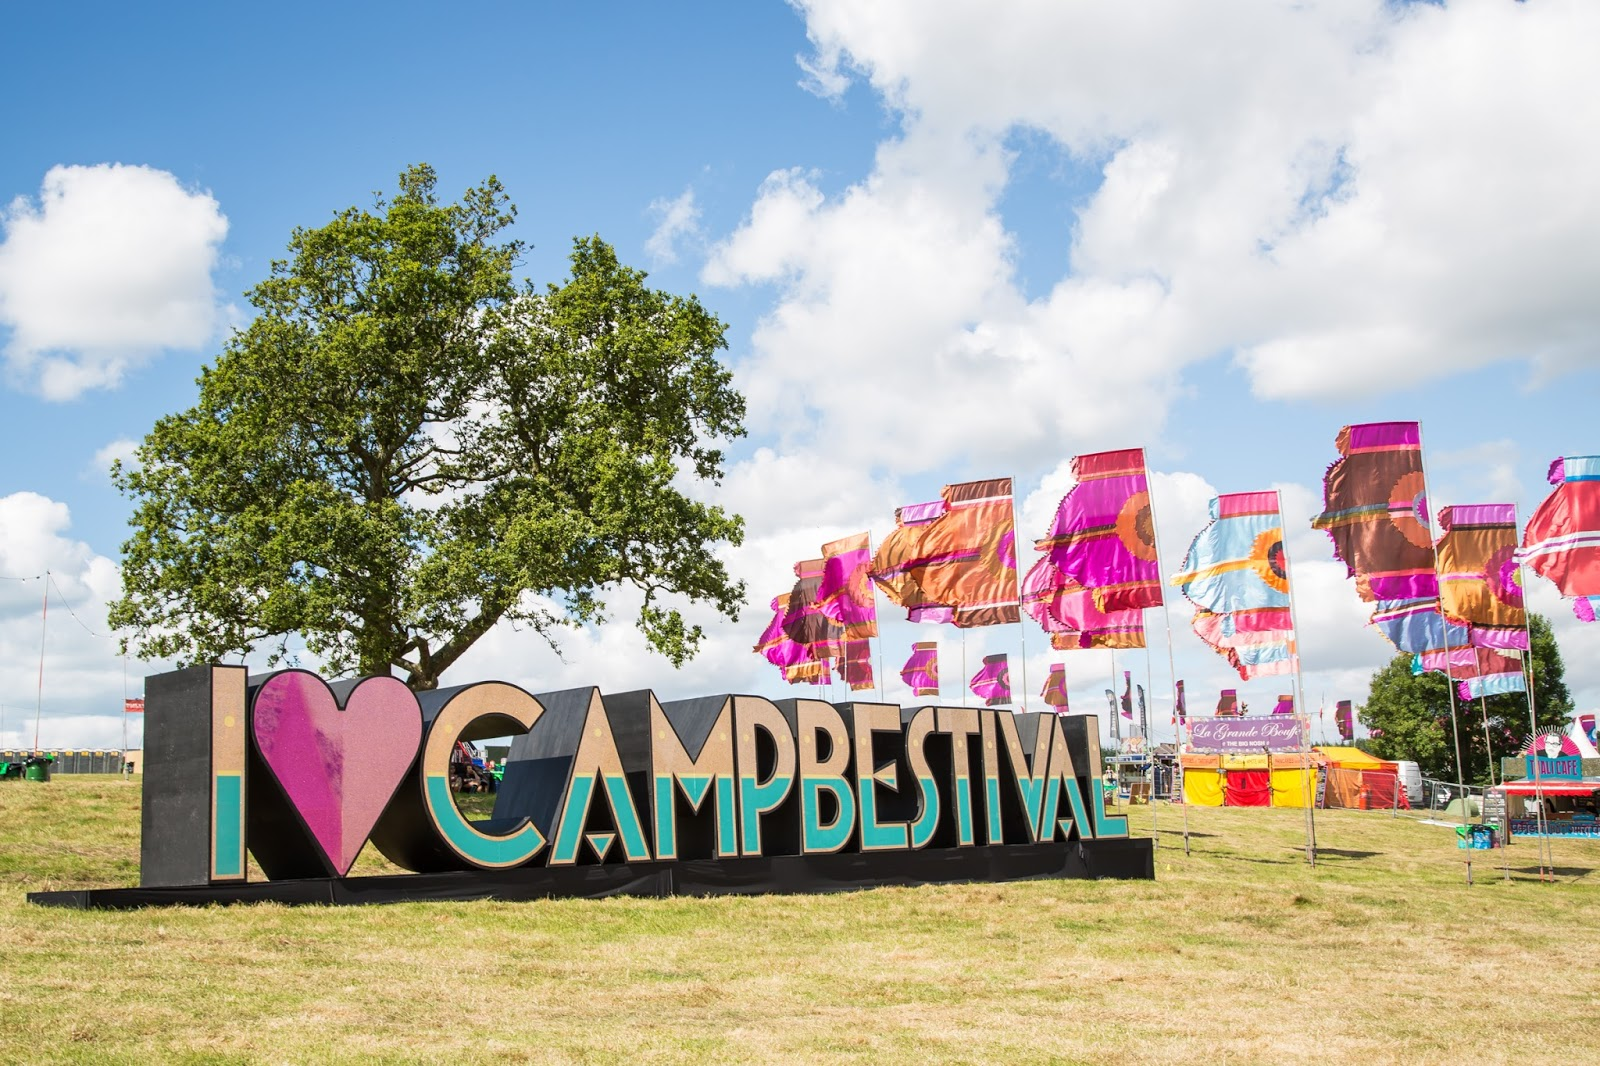 Picture: Camp Bestival